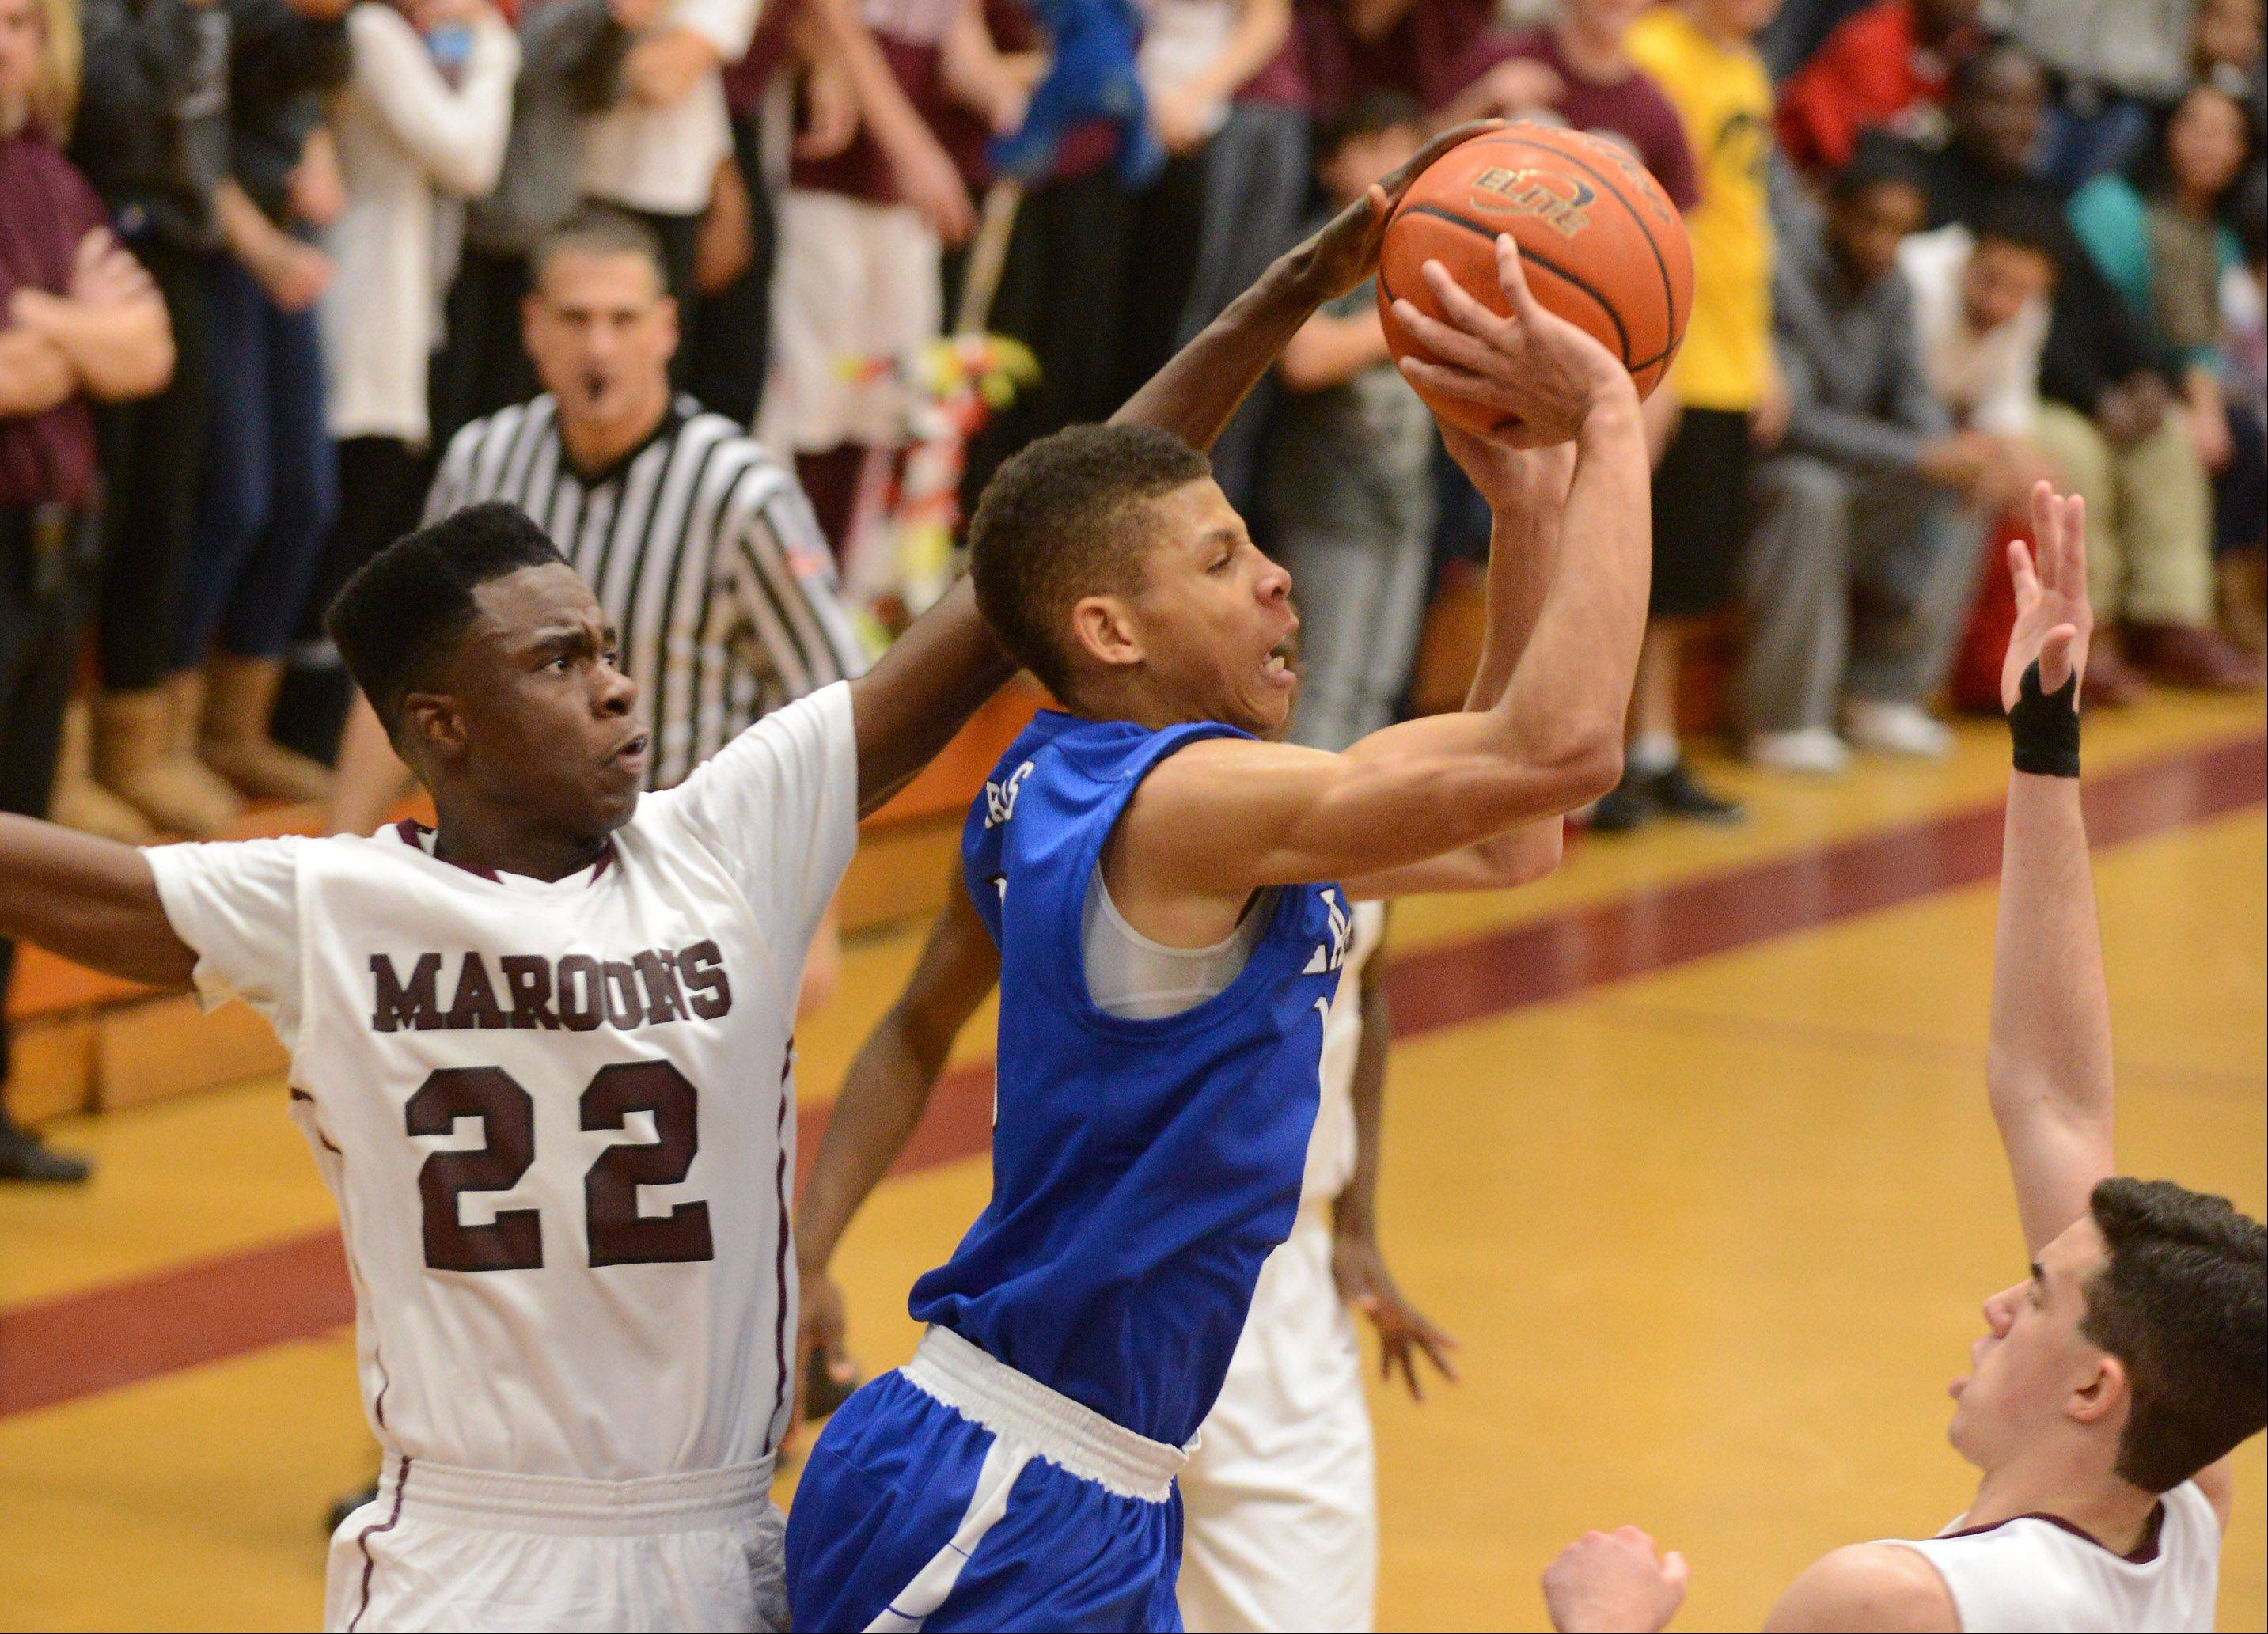 Larkin�s Kendale McCullum (10) puts up a shot between a pair of Elgin defenders, including Desmond Sanders (22), and draws a foul during Thursday�s game at Elgin.